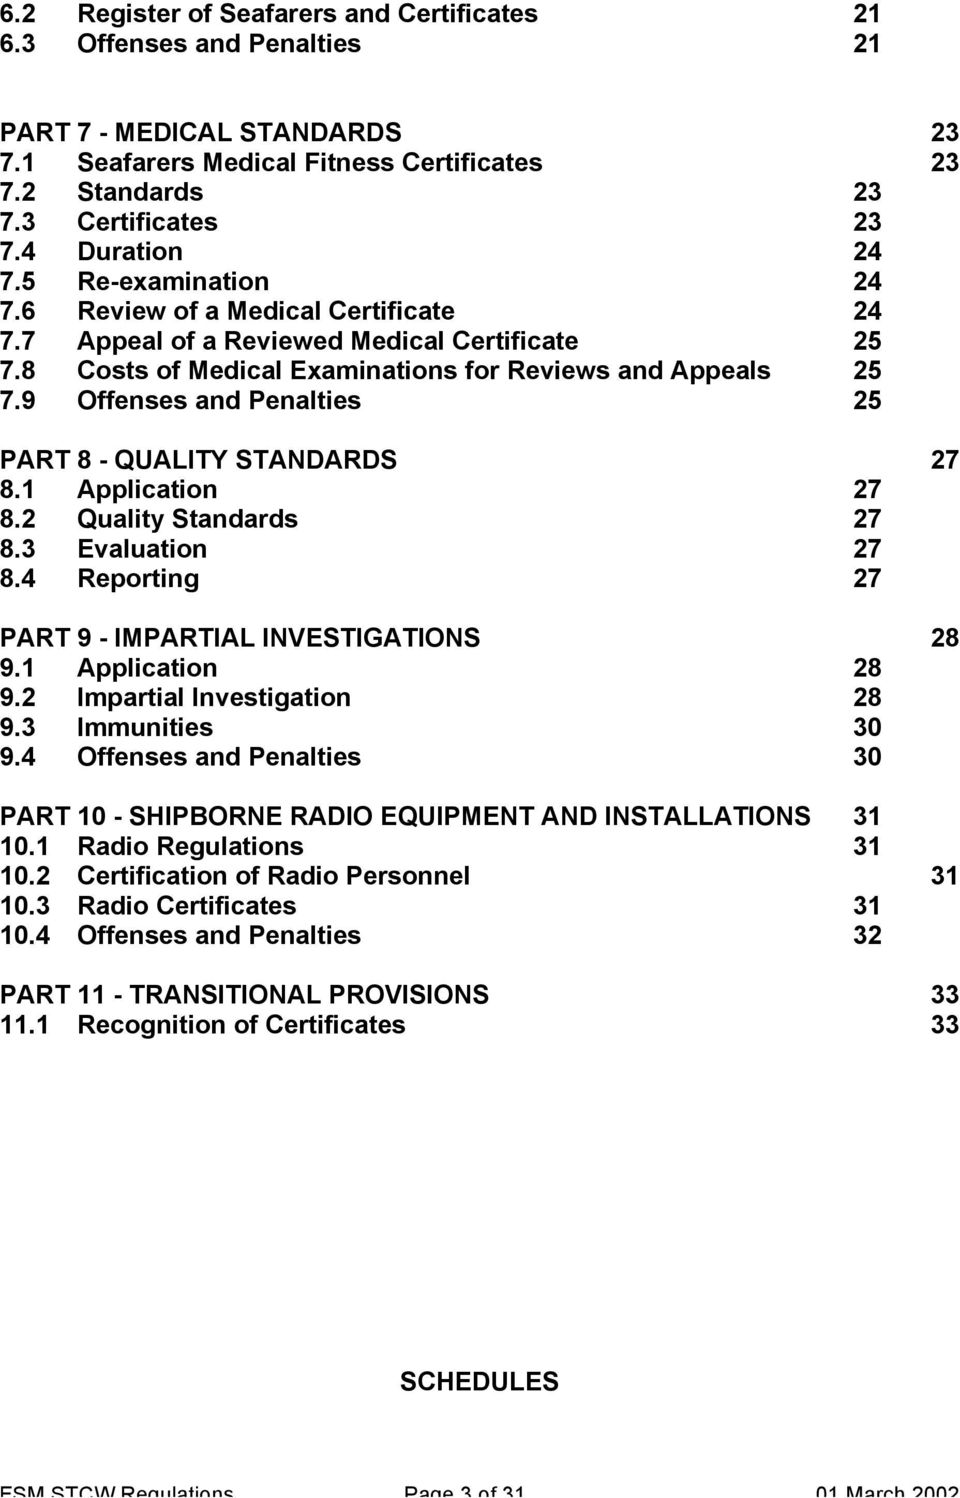 9 Offenses and Penalties 25 PART 8 - QUALITY STANDARDS 27 8.1 Application 27 8.2 Quality Standards 27 8.3 Evaluation 27 8.4 Reporting 27 PART 9 - IMPARTIAL INVESTIGATIONS 28 9.1 Application 28 9.